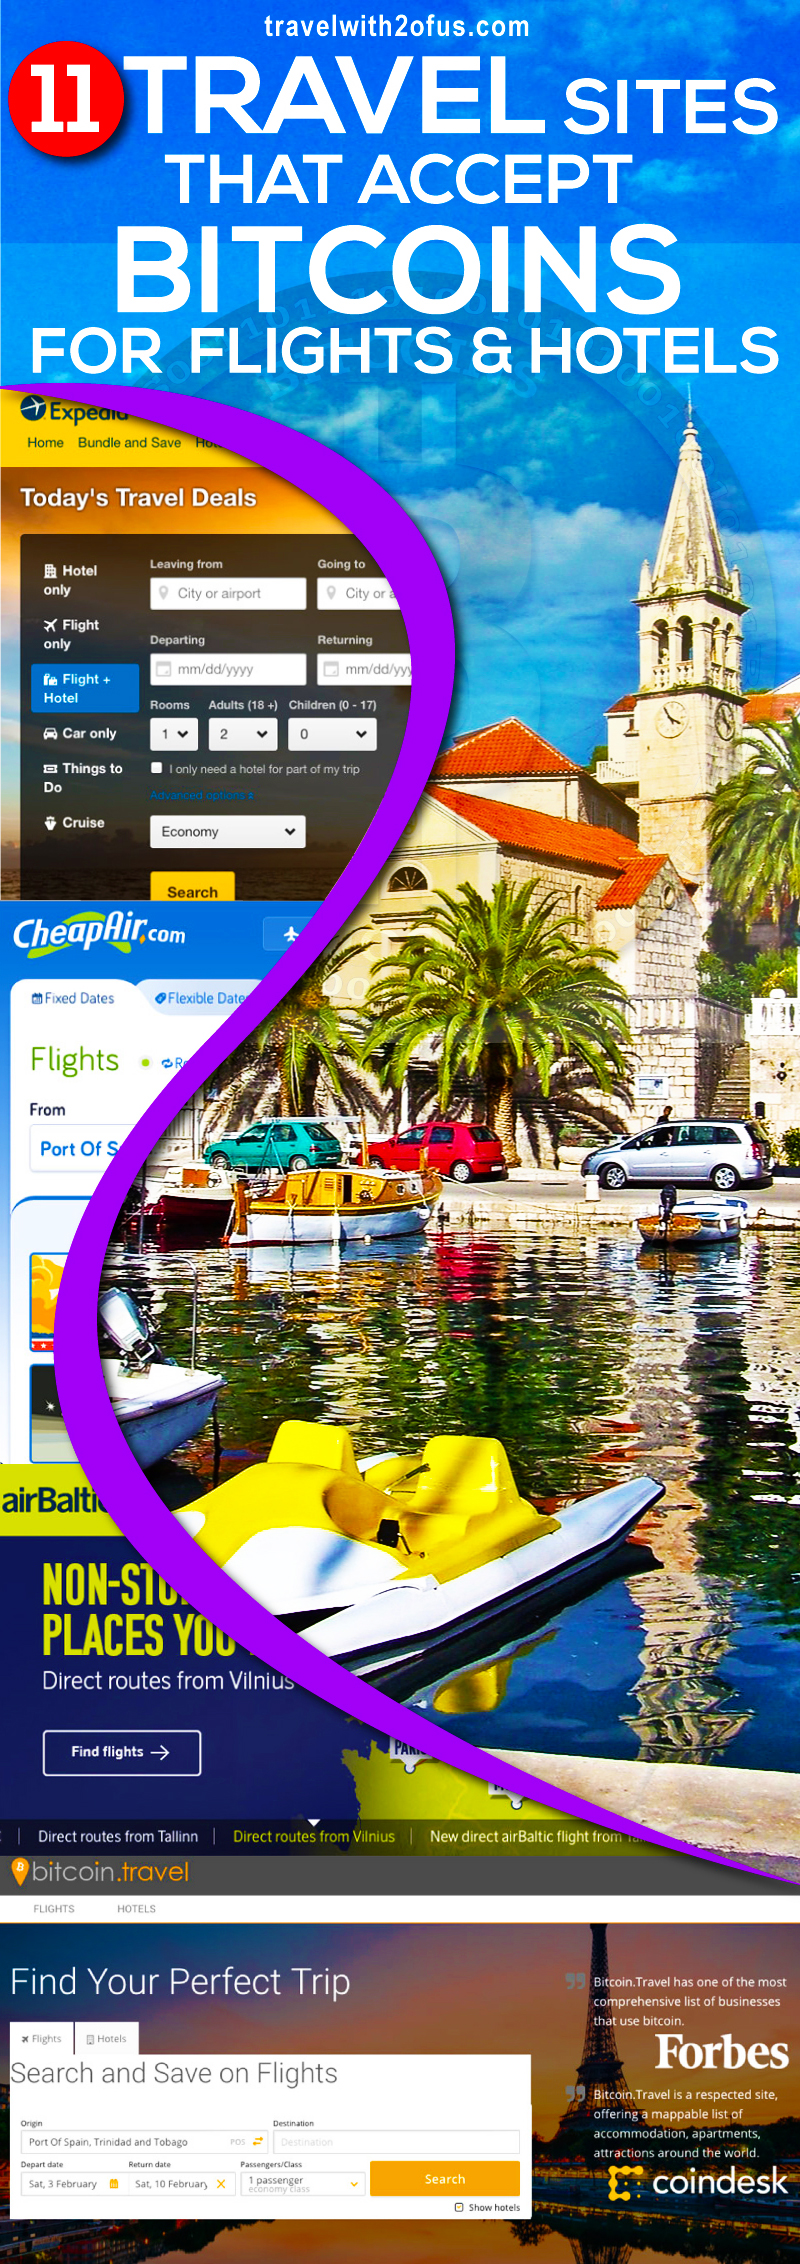 Have You Ever Made A Flight Or Hotel Booking Using Bitcoin Let Us Know About Your Experience